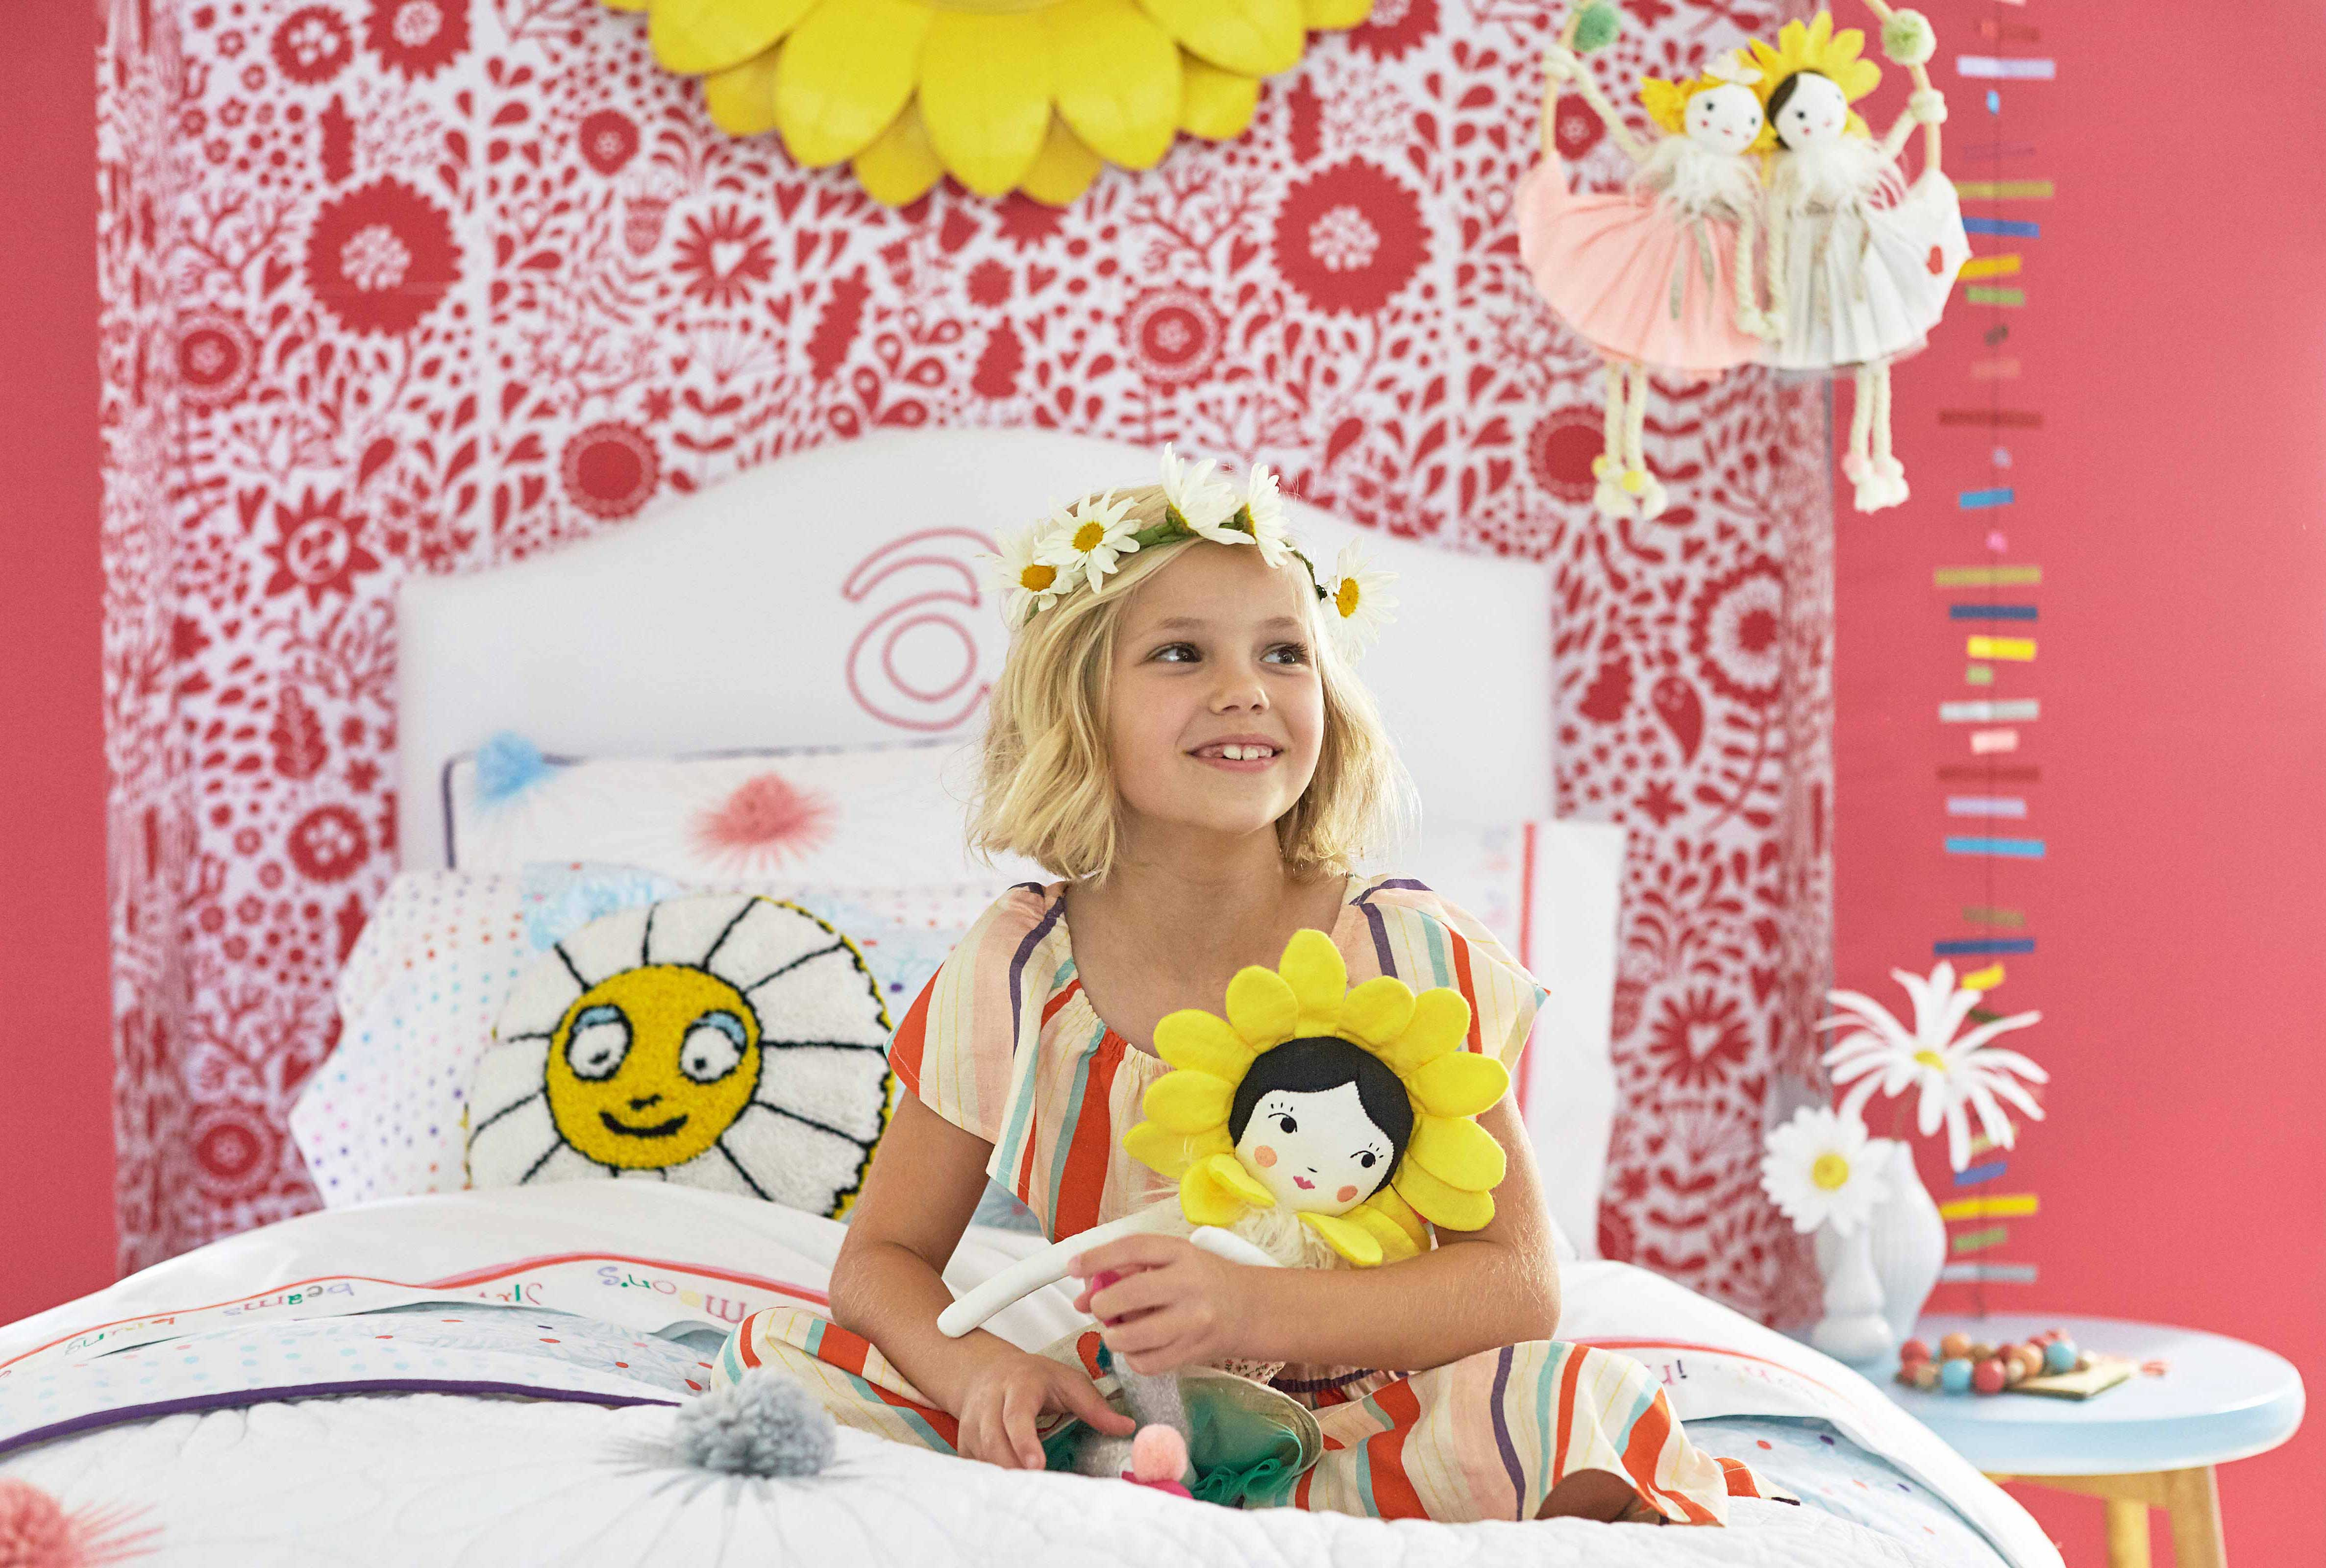 Margherita Missoni on her new collaboration with Pottery Barn Kids